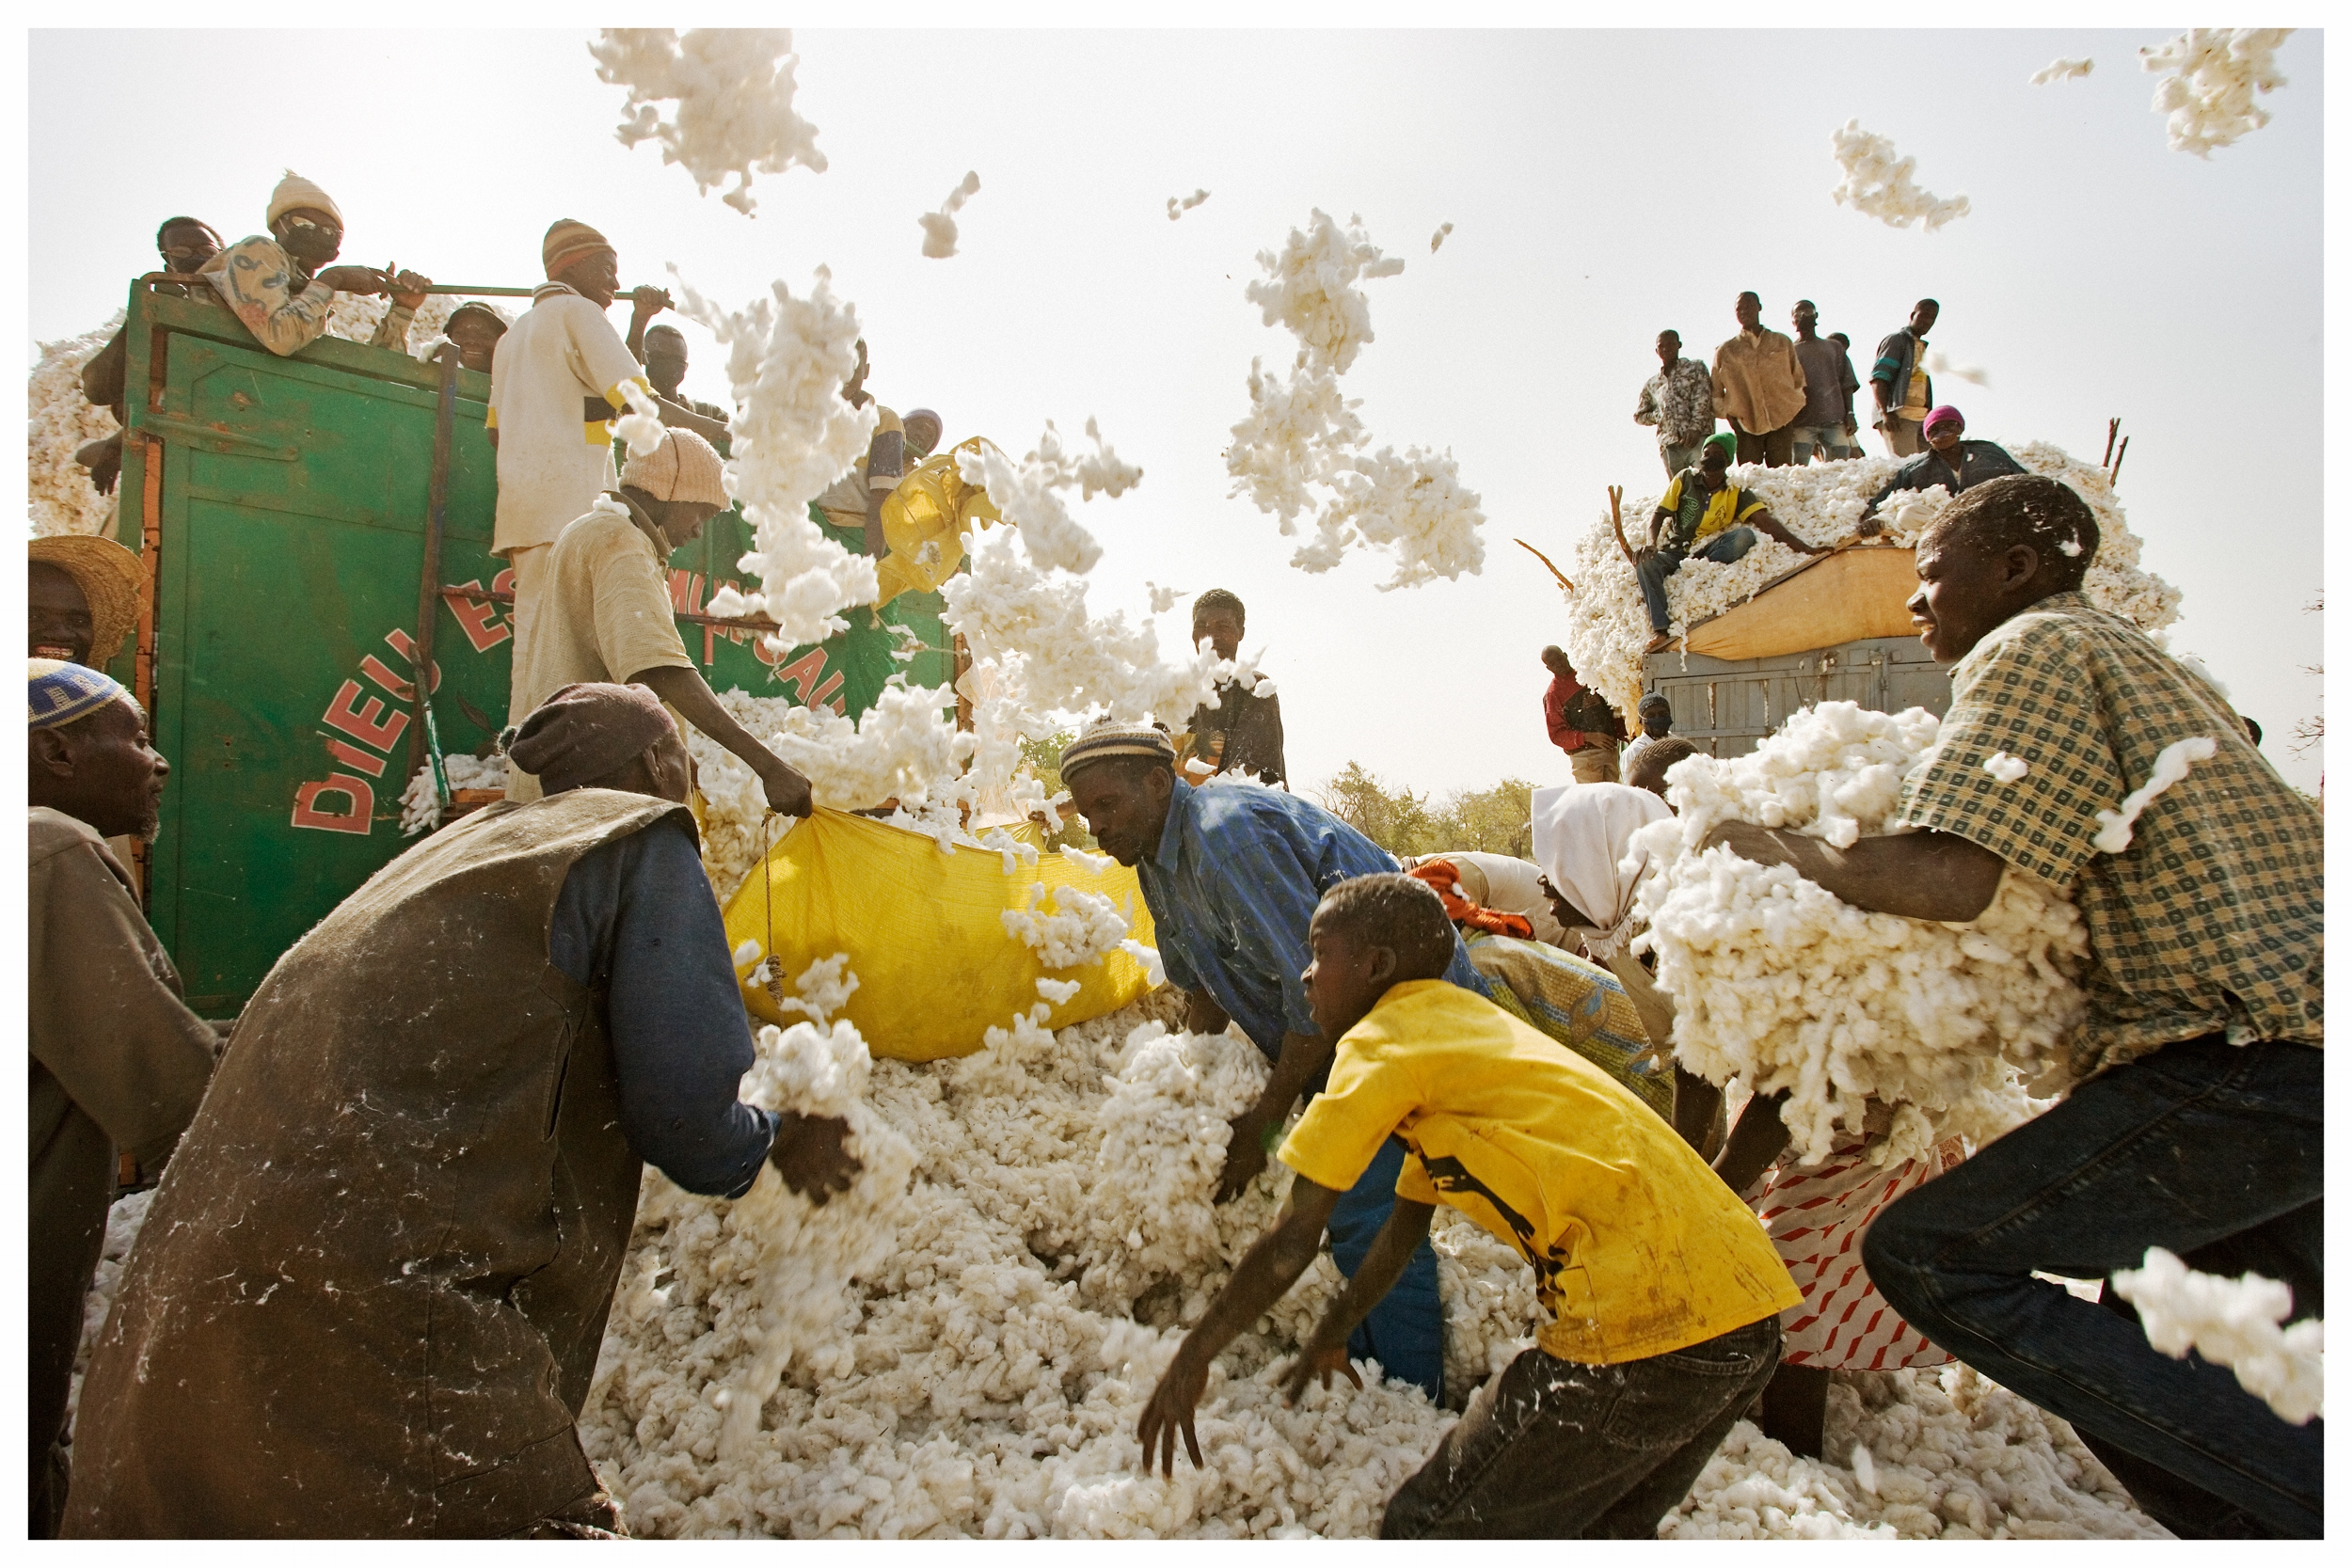 Cotton farmers loading their harvest for market. Southern Burkina Faso. Photo © Marcus Perkins